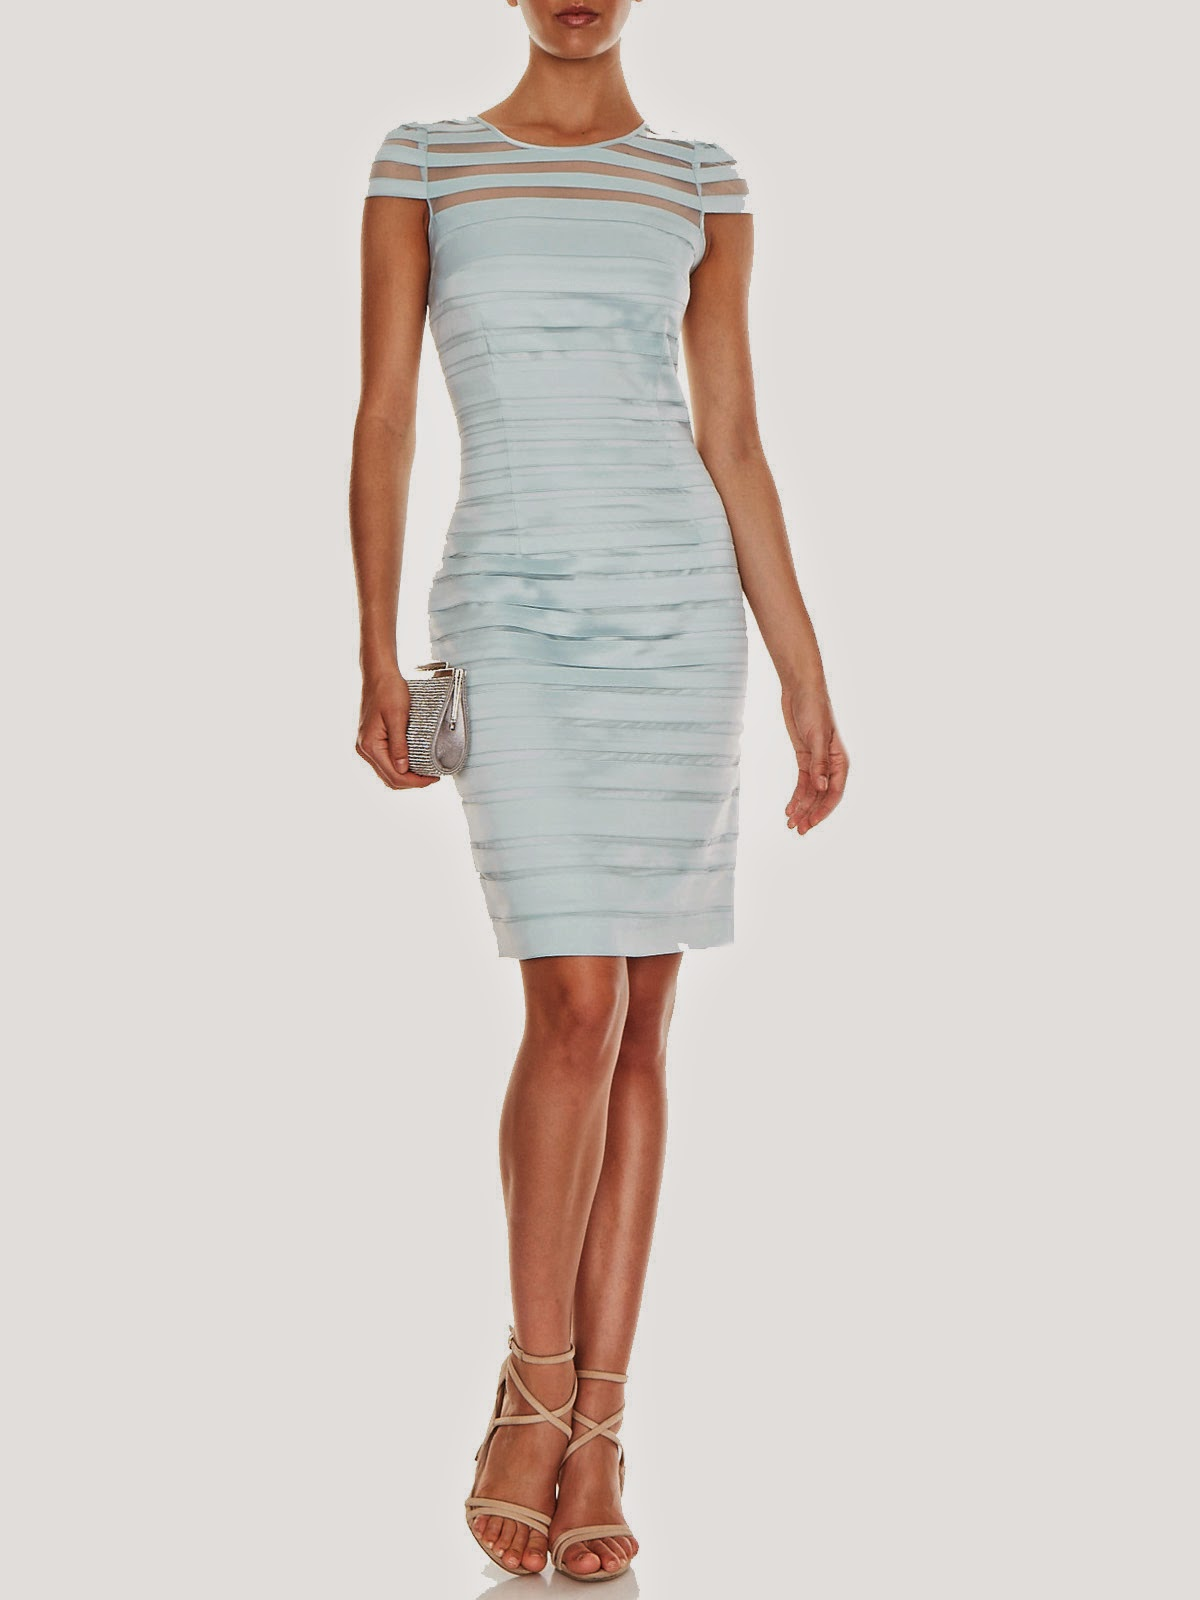 Harlow Tapework Dress